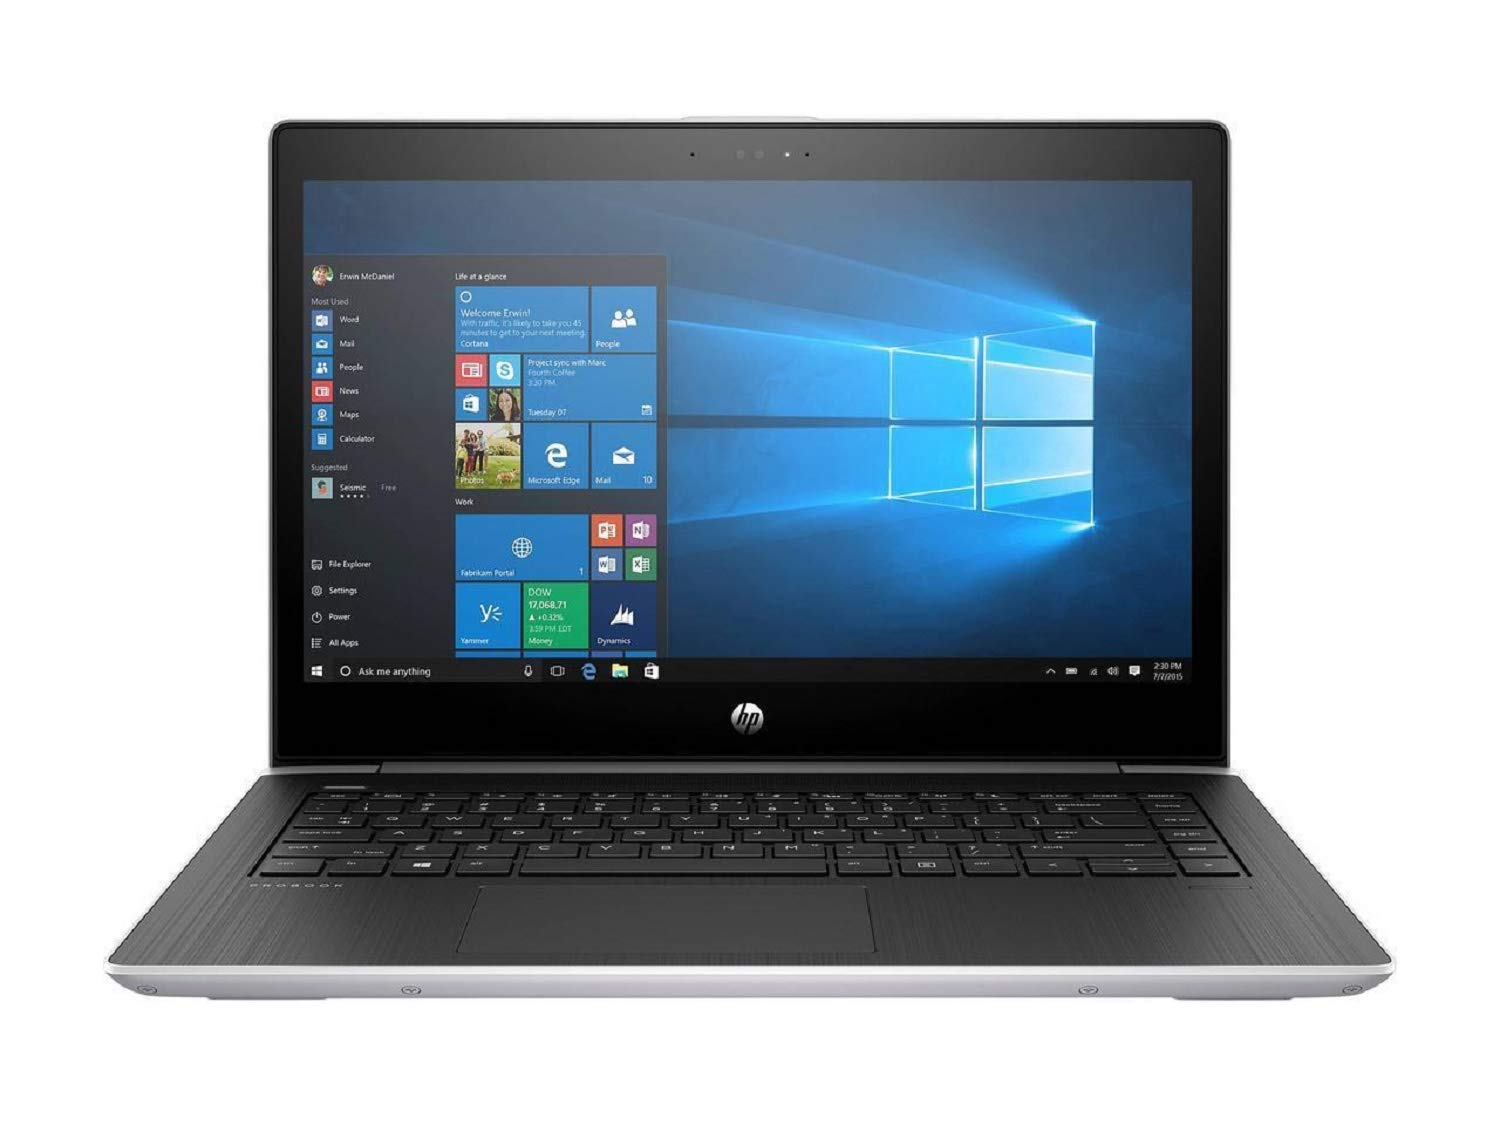 【国際ブランド】 HP HD ProBook 4-core, 440 G5 Premium School and Business Laptop Pro) PC (Intel 8th Gen i5-8250U 4-core, 8GB RAM, 500GB HDD + 128GB Sata SSD, 14